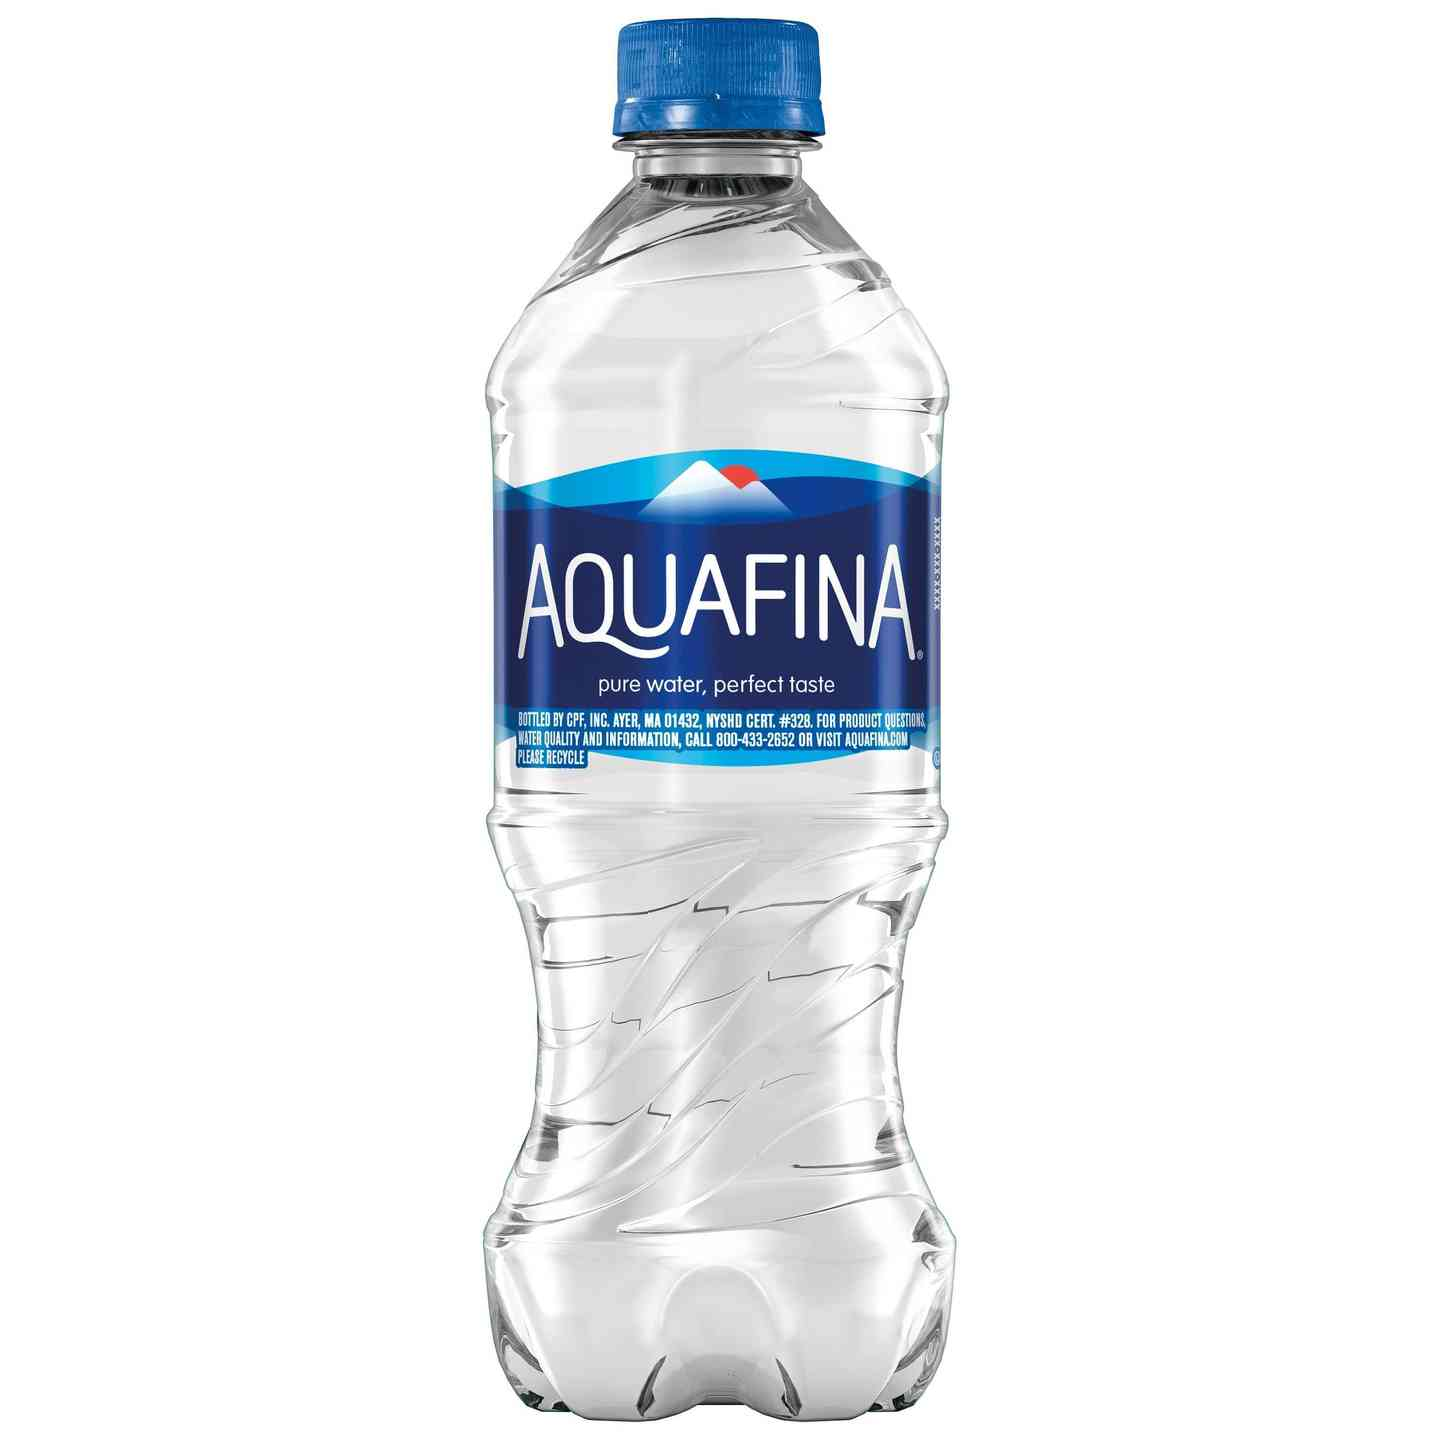 Aquafina (20 oz Bottle)